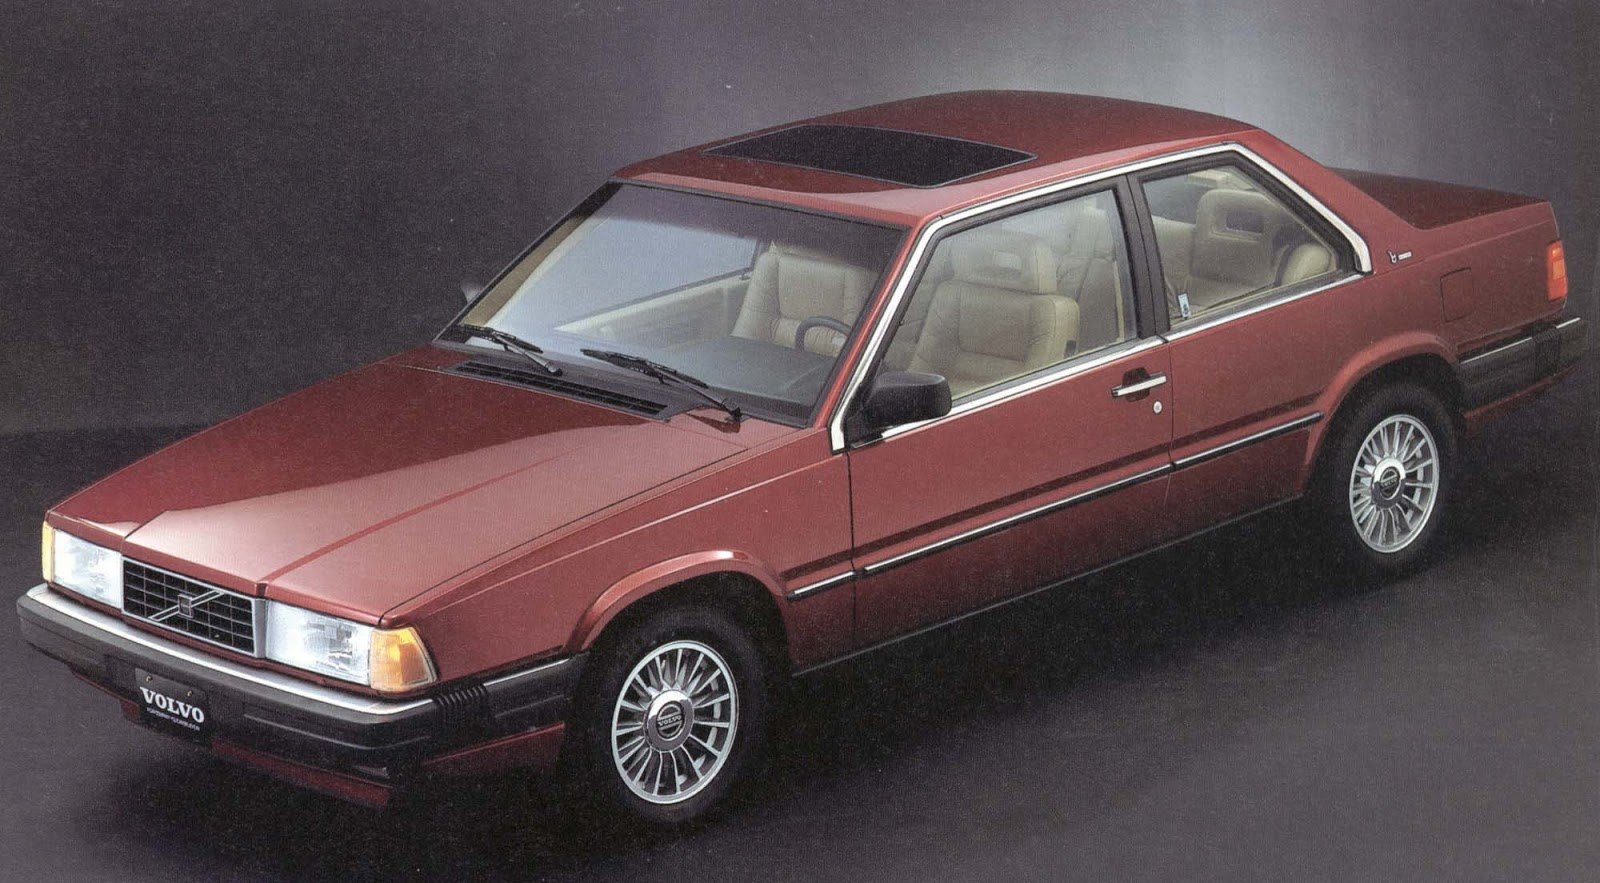 1991 Volvo Coupe Image 4